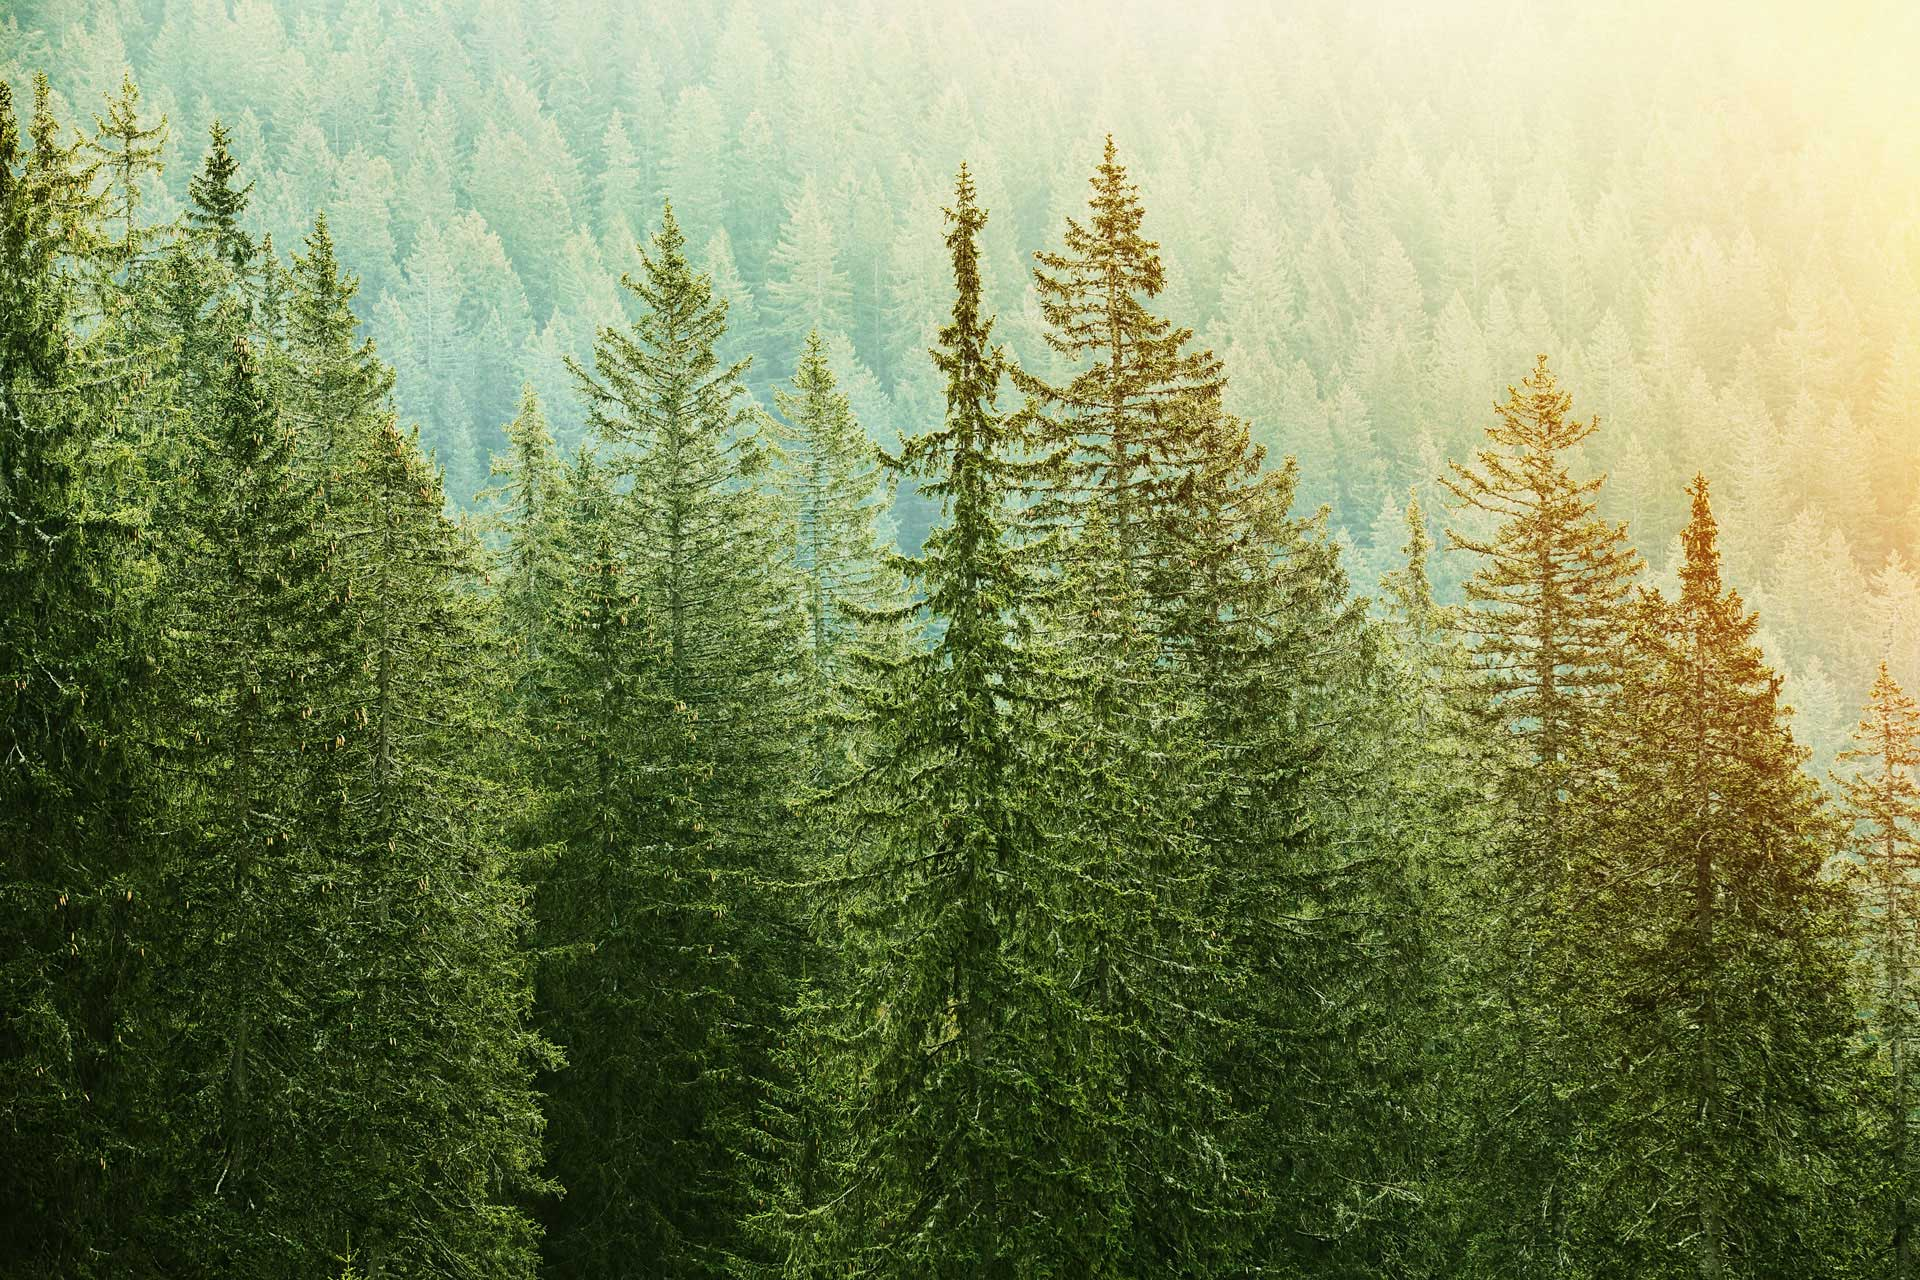 bigstock-Green-Coniferous-Forest-Lit-By-90469688